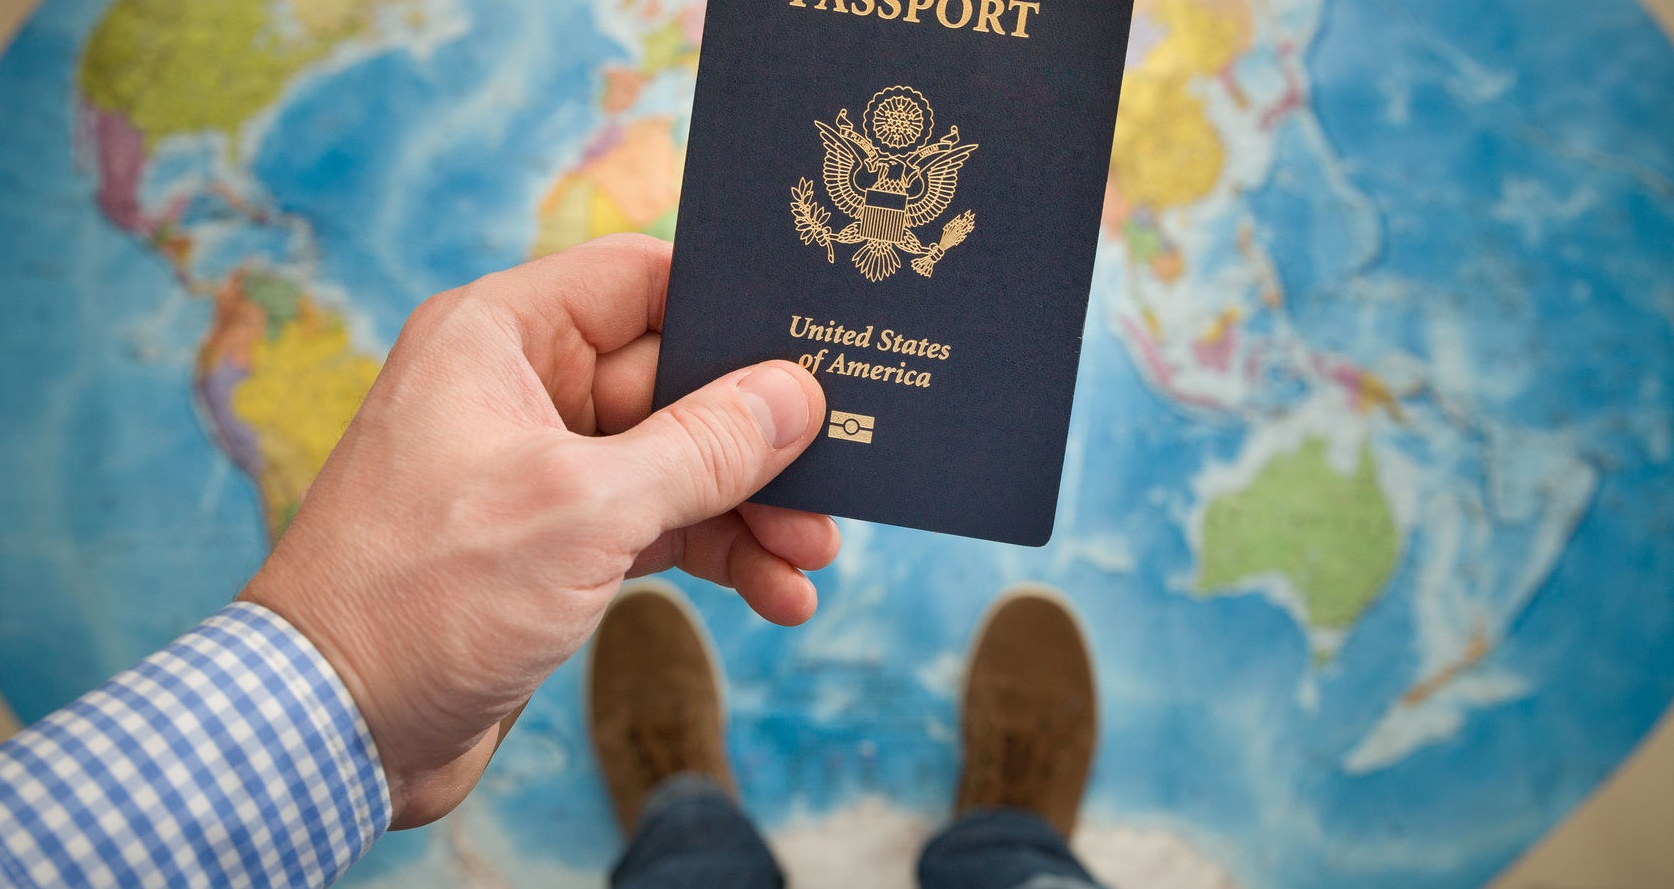 Travel visa services expedited passports visas travel visa services thecheapjerseys Image collections